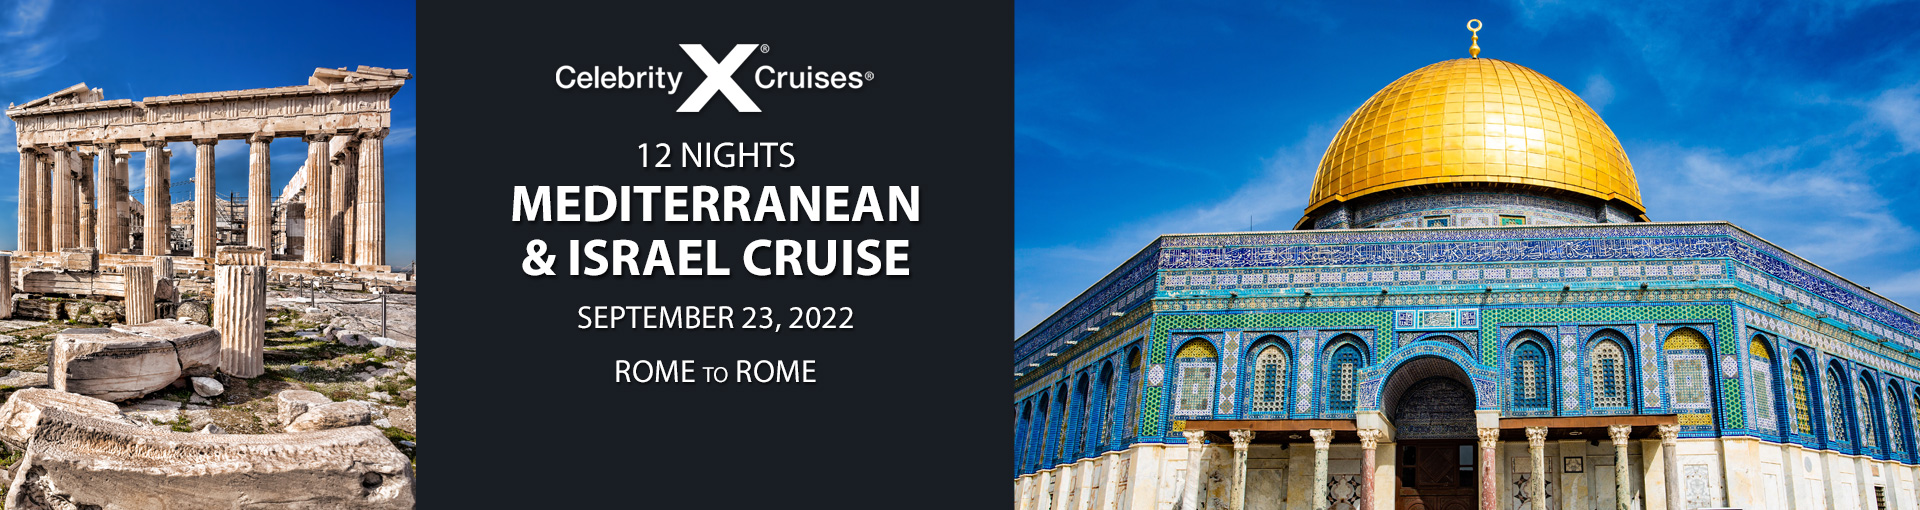 Exclusive Travelzoo offer for Celebrity Cruises' Israel and Mediterranean Itinerary